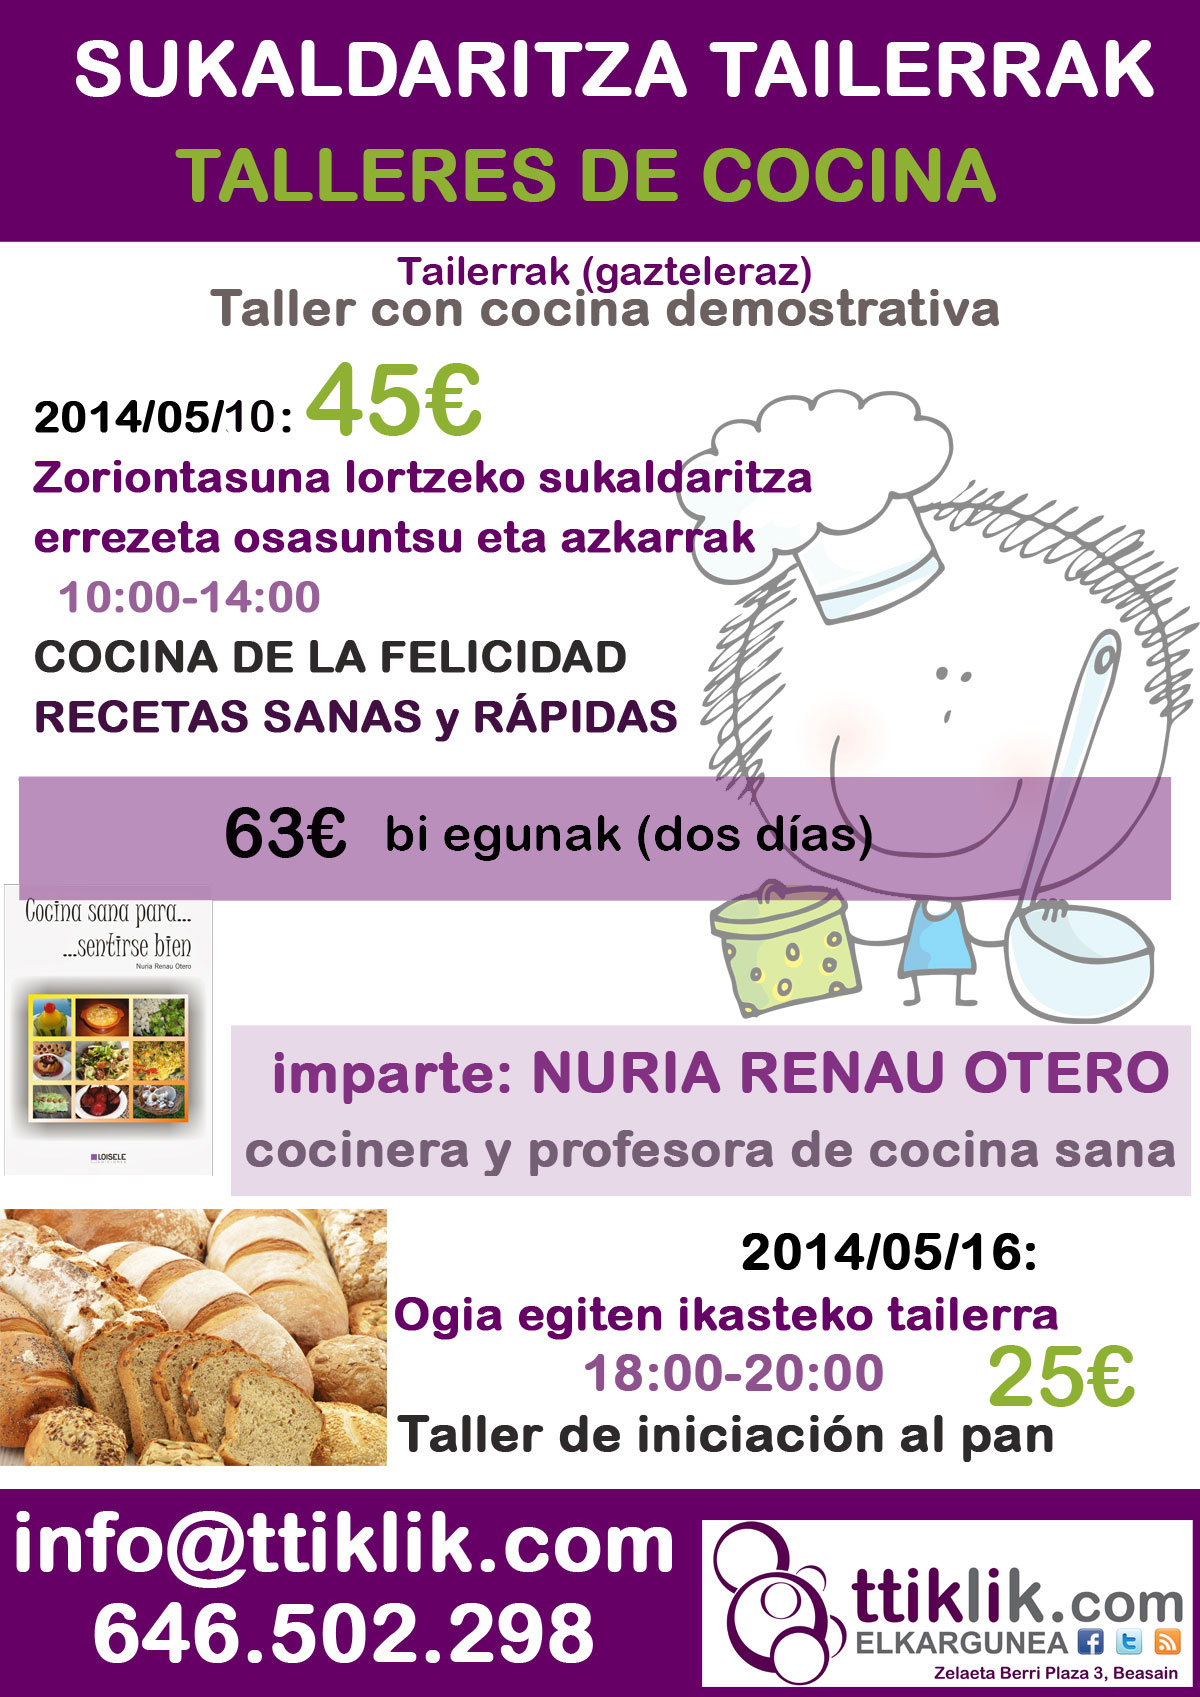 Photo of Recetas rápidas y taller del pan